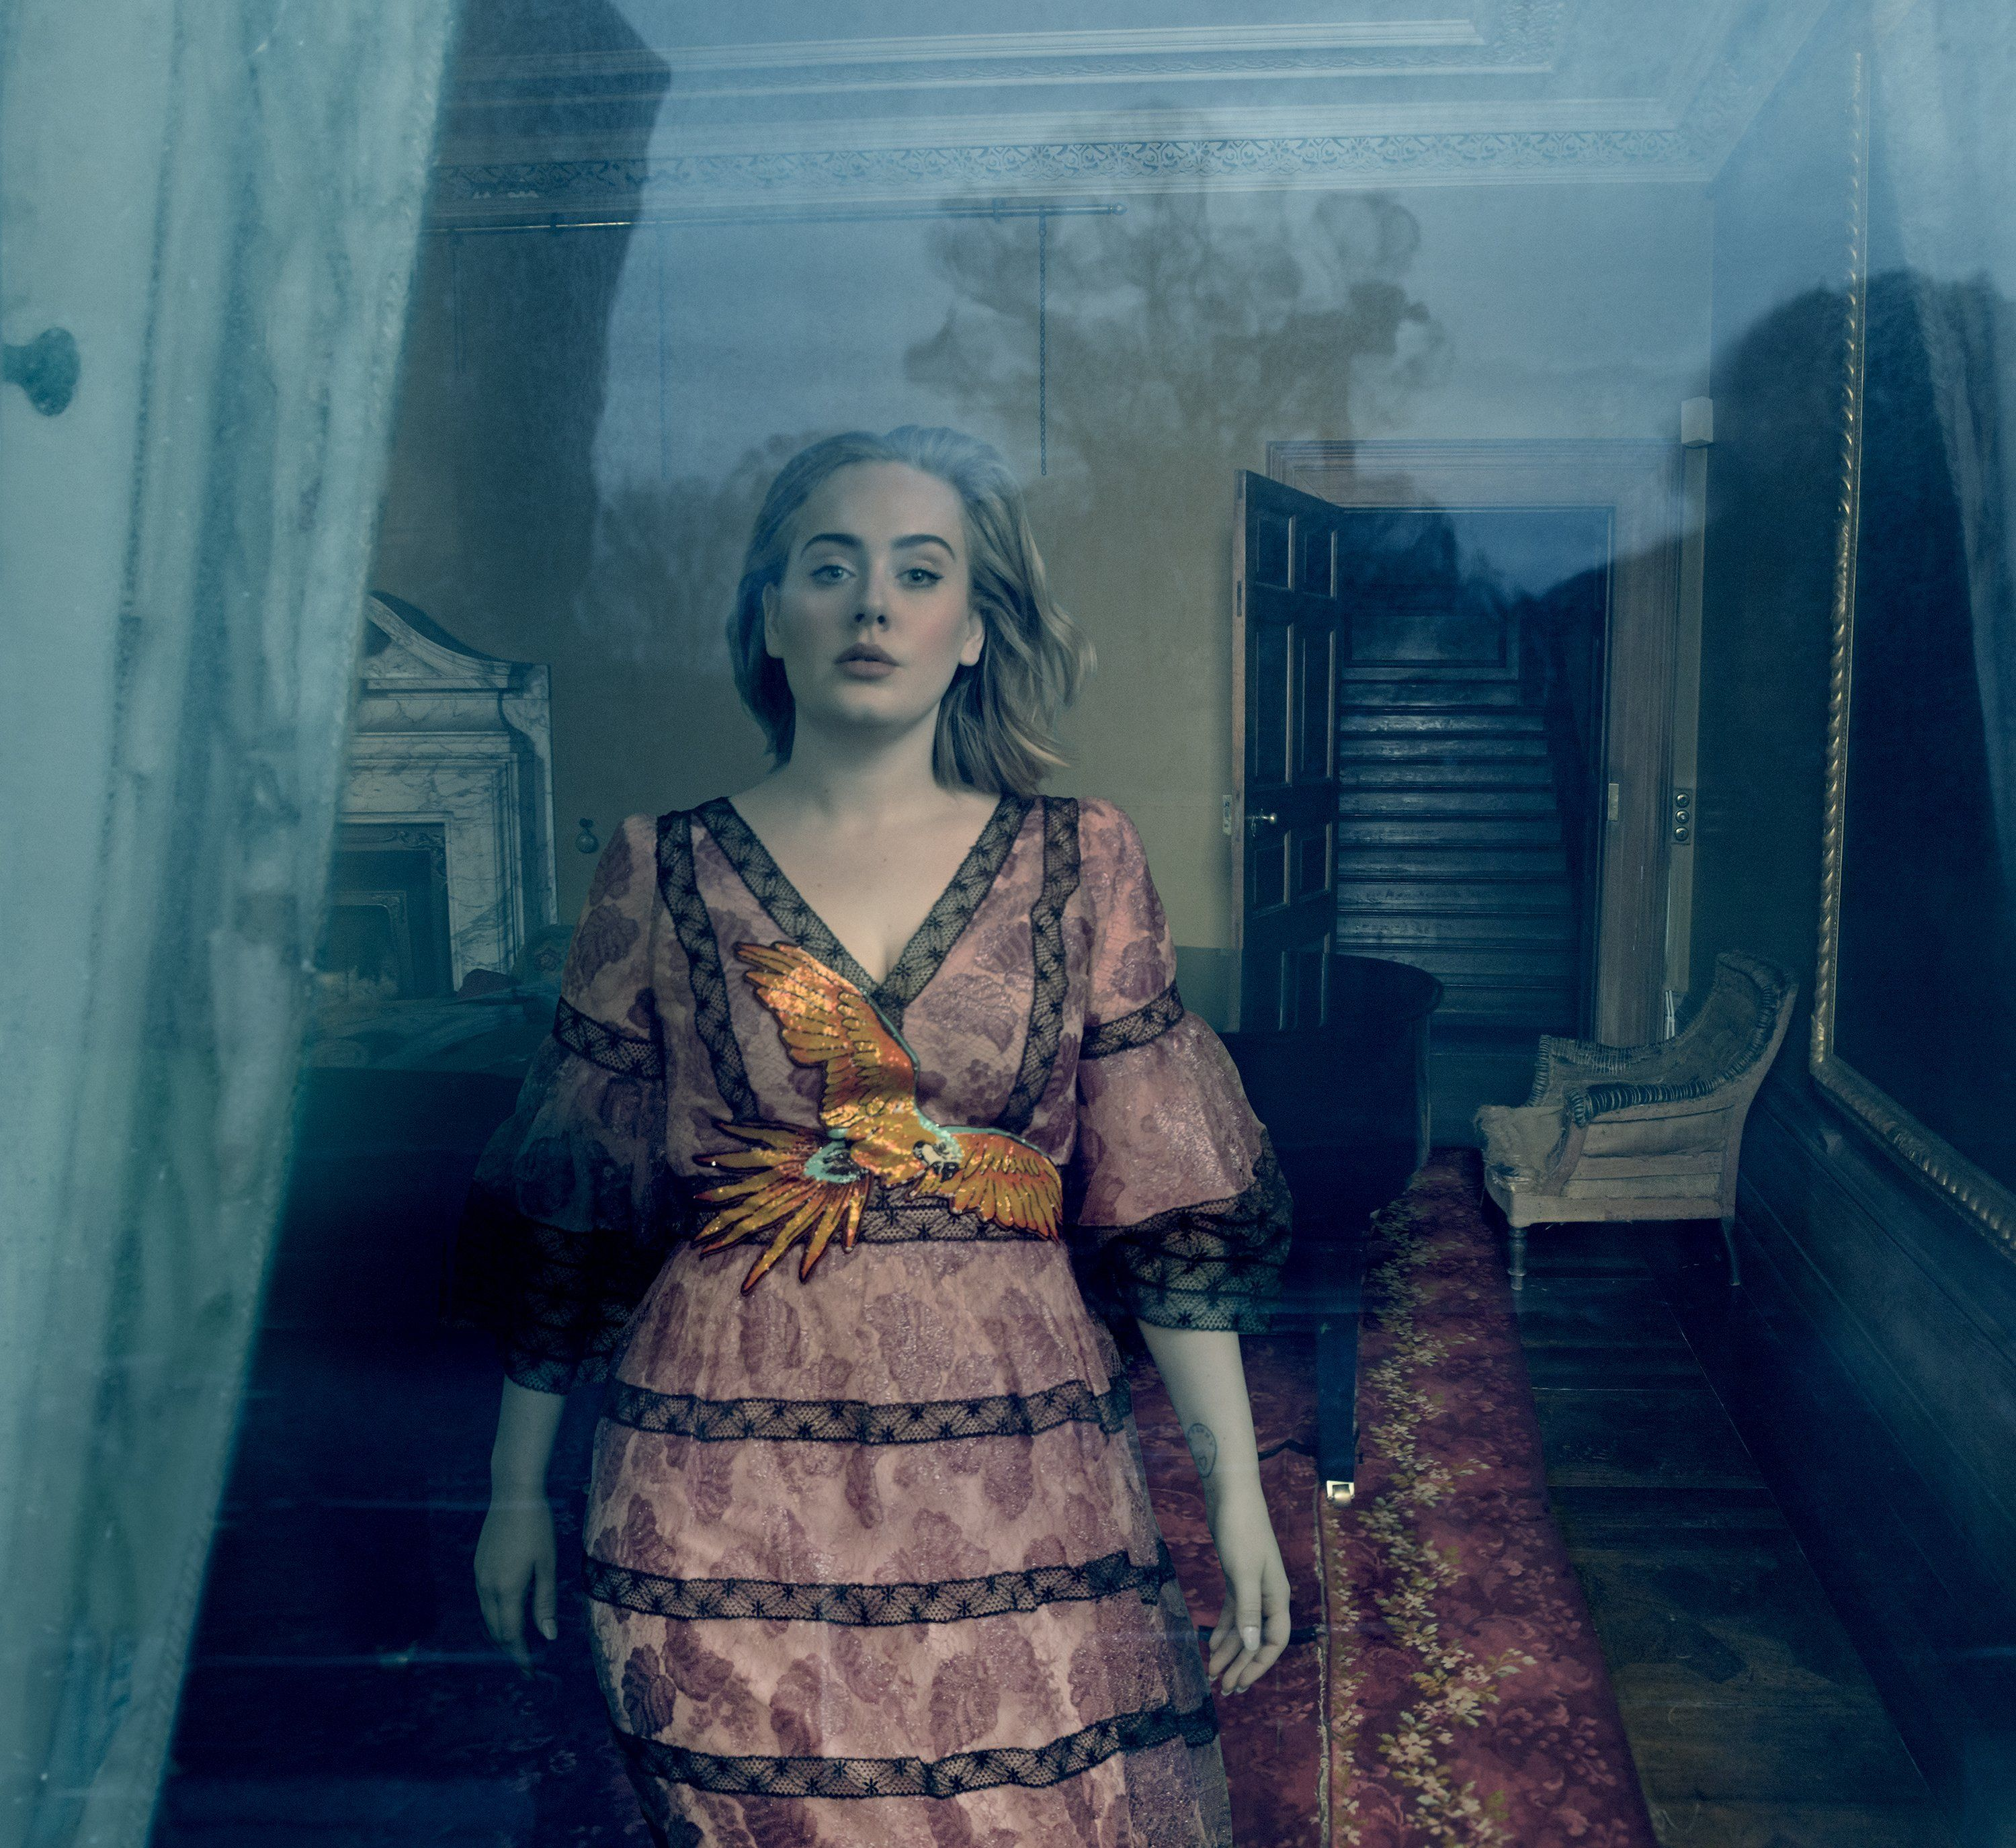 annie leibovitz 2 She says gucci dress vogue fashion editor grace coddington and annie  leibovitz visited the set of the beguiled to capture the emerging star fashion:  grace.